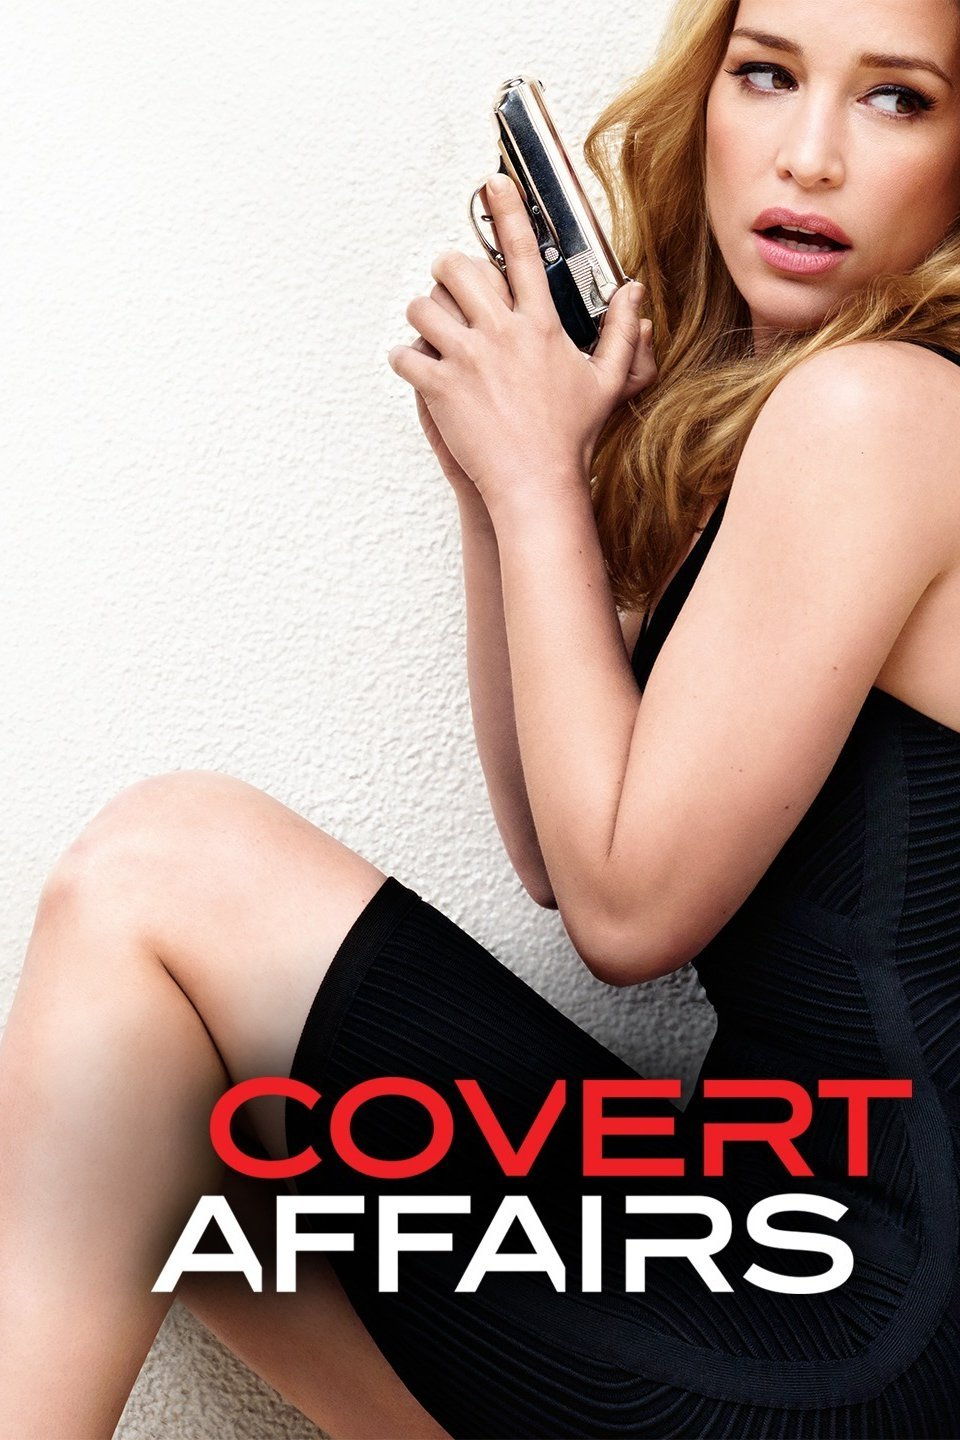 Covert Affairs, 2010